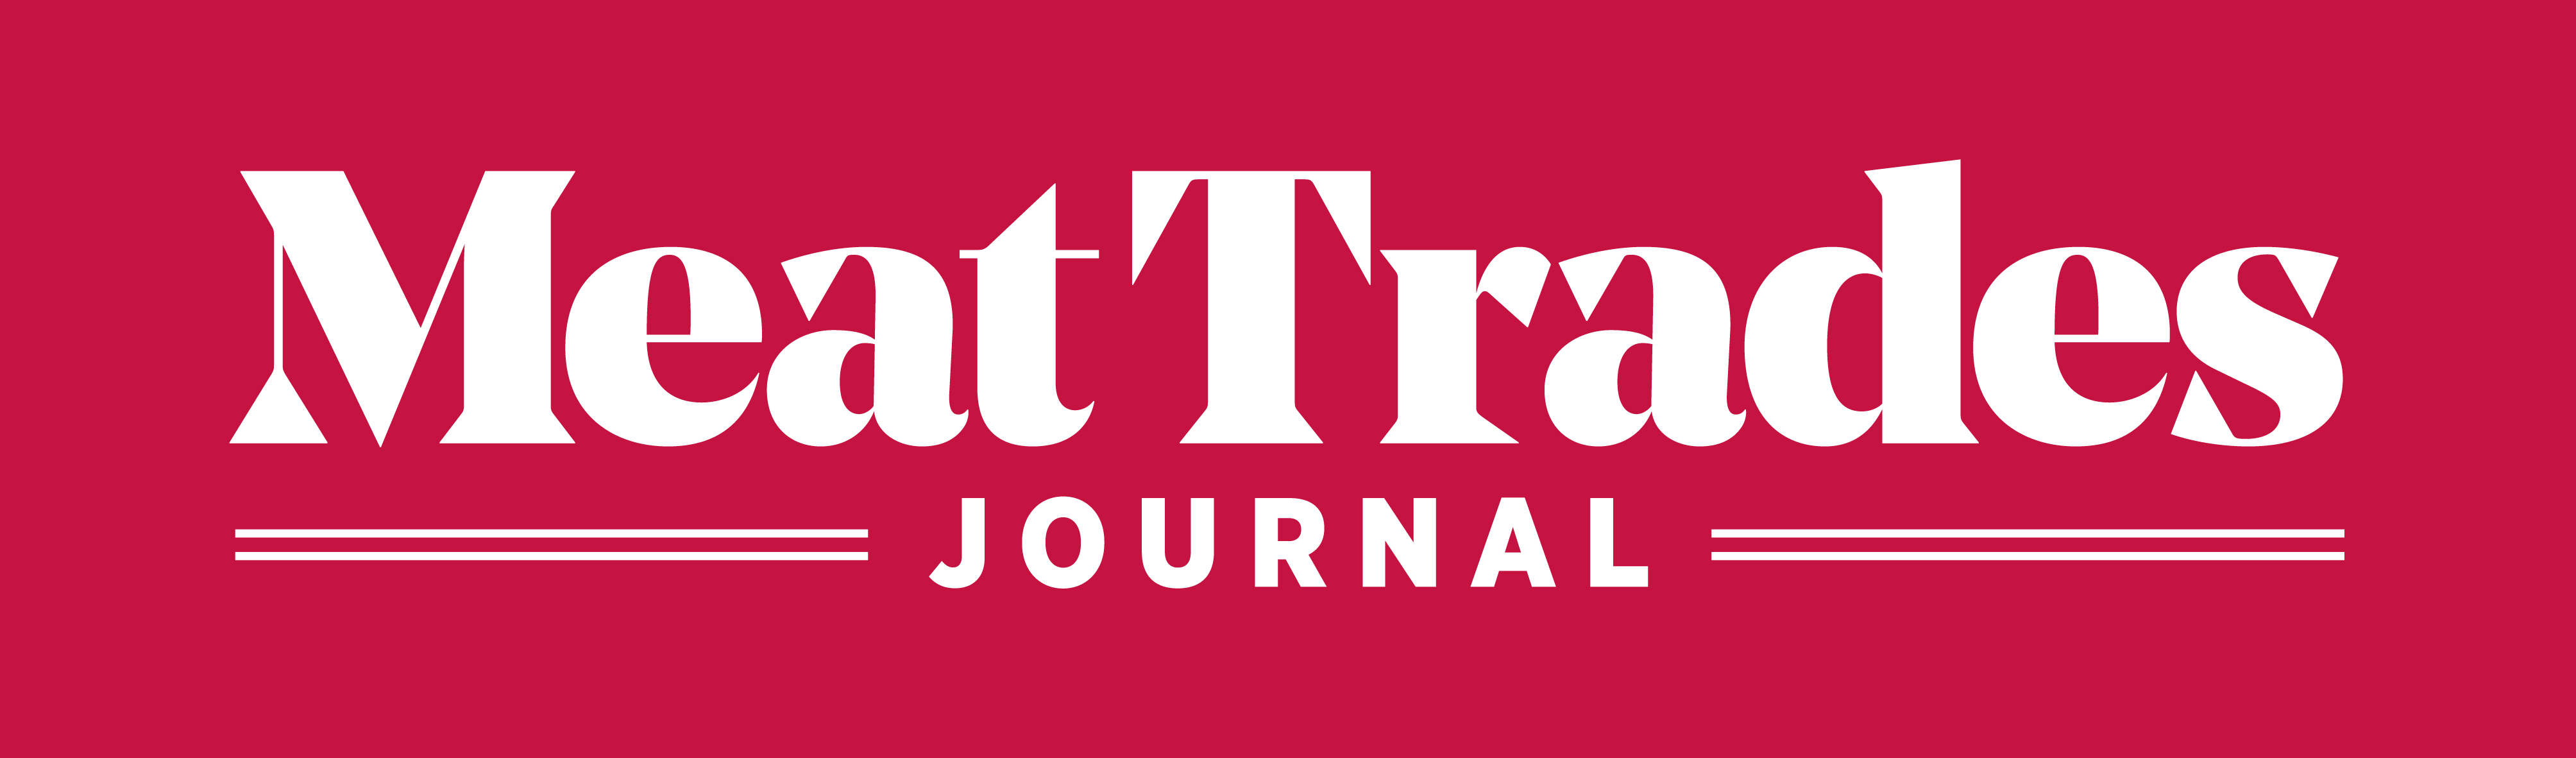 Meat Trade Journal